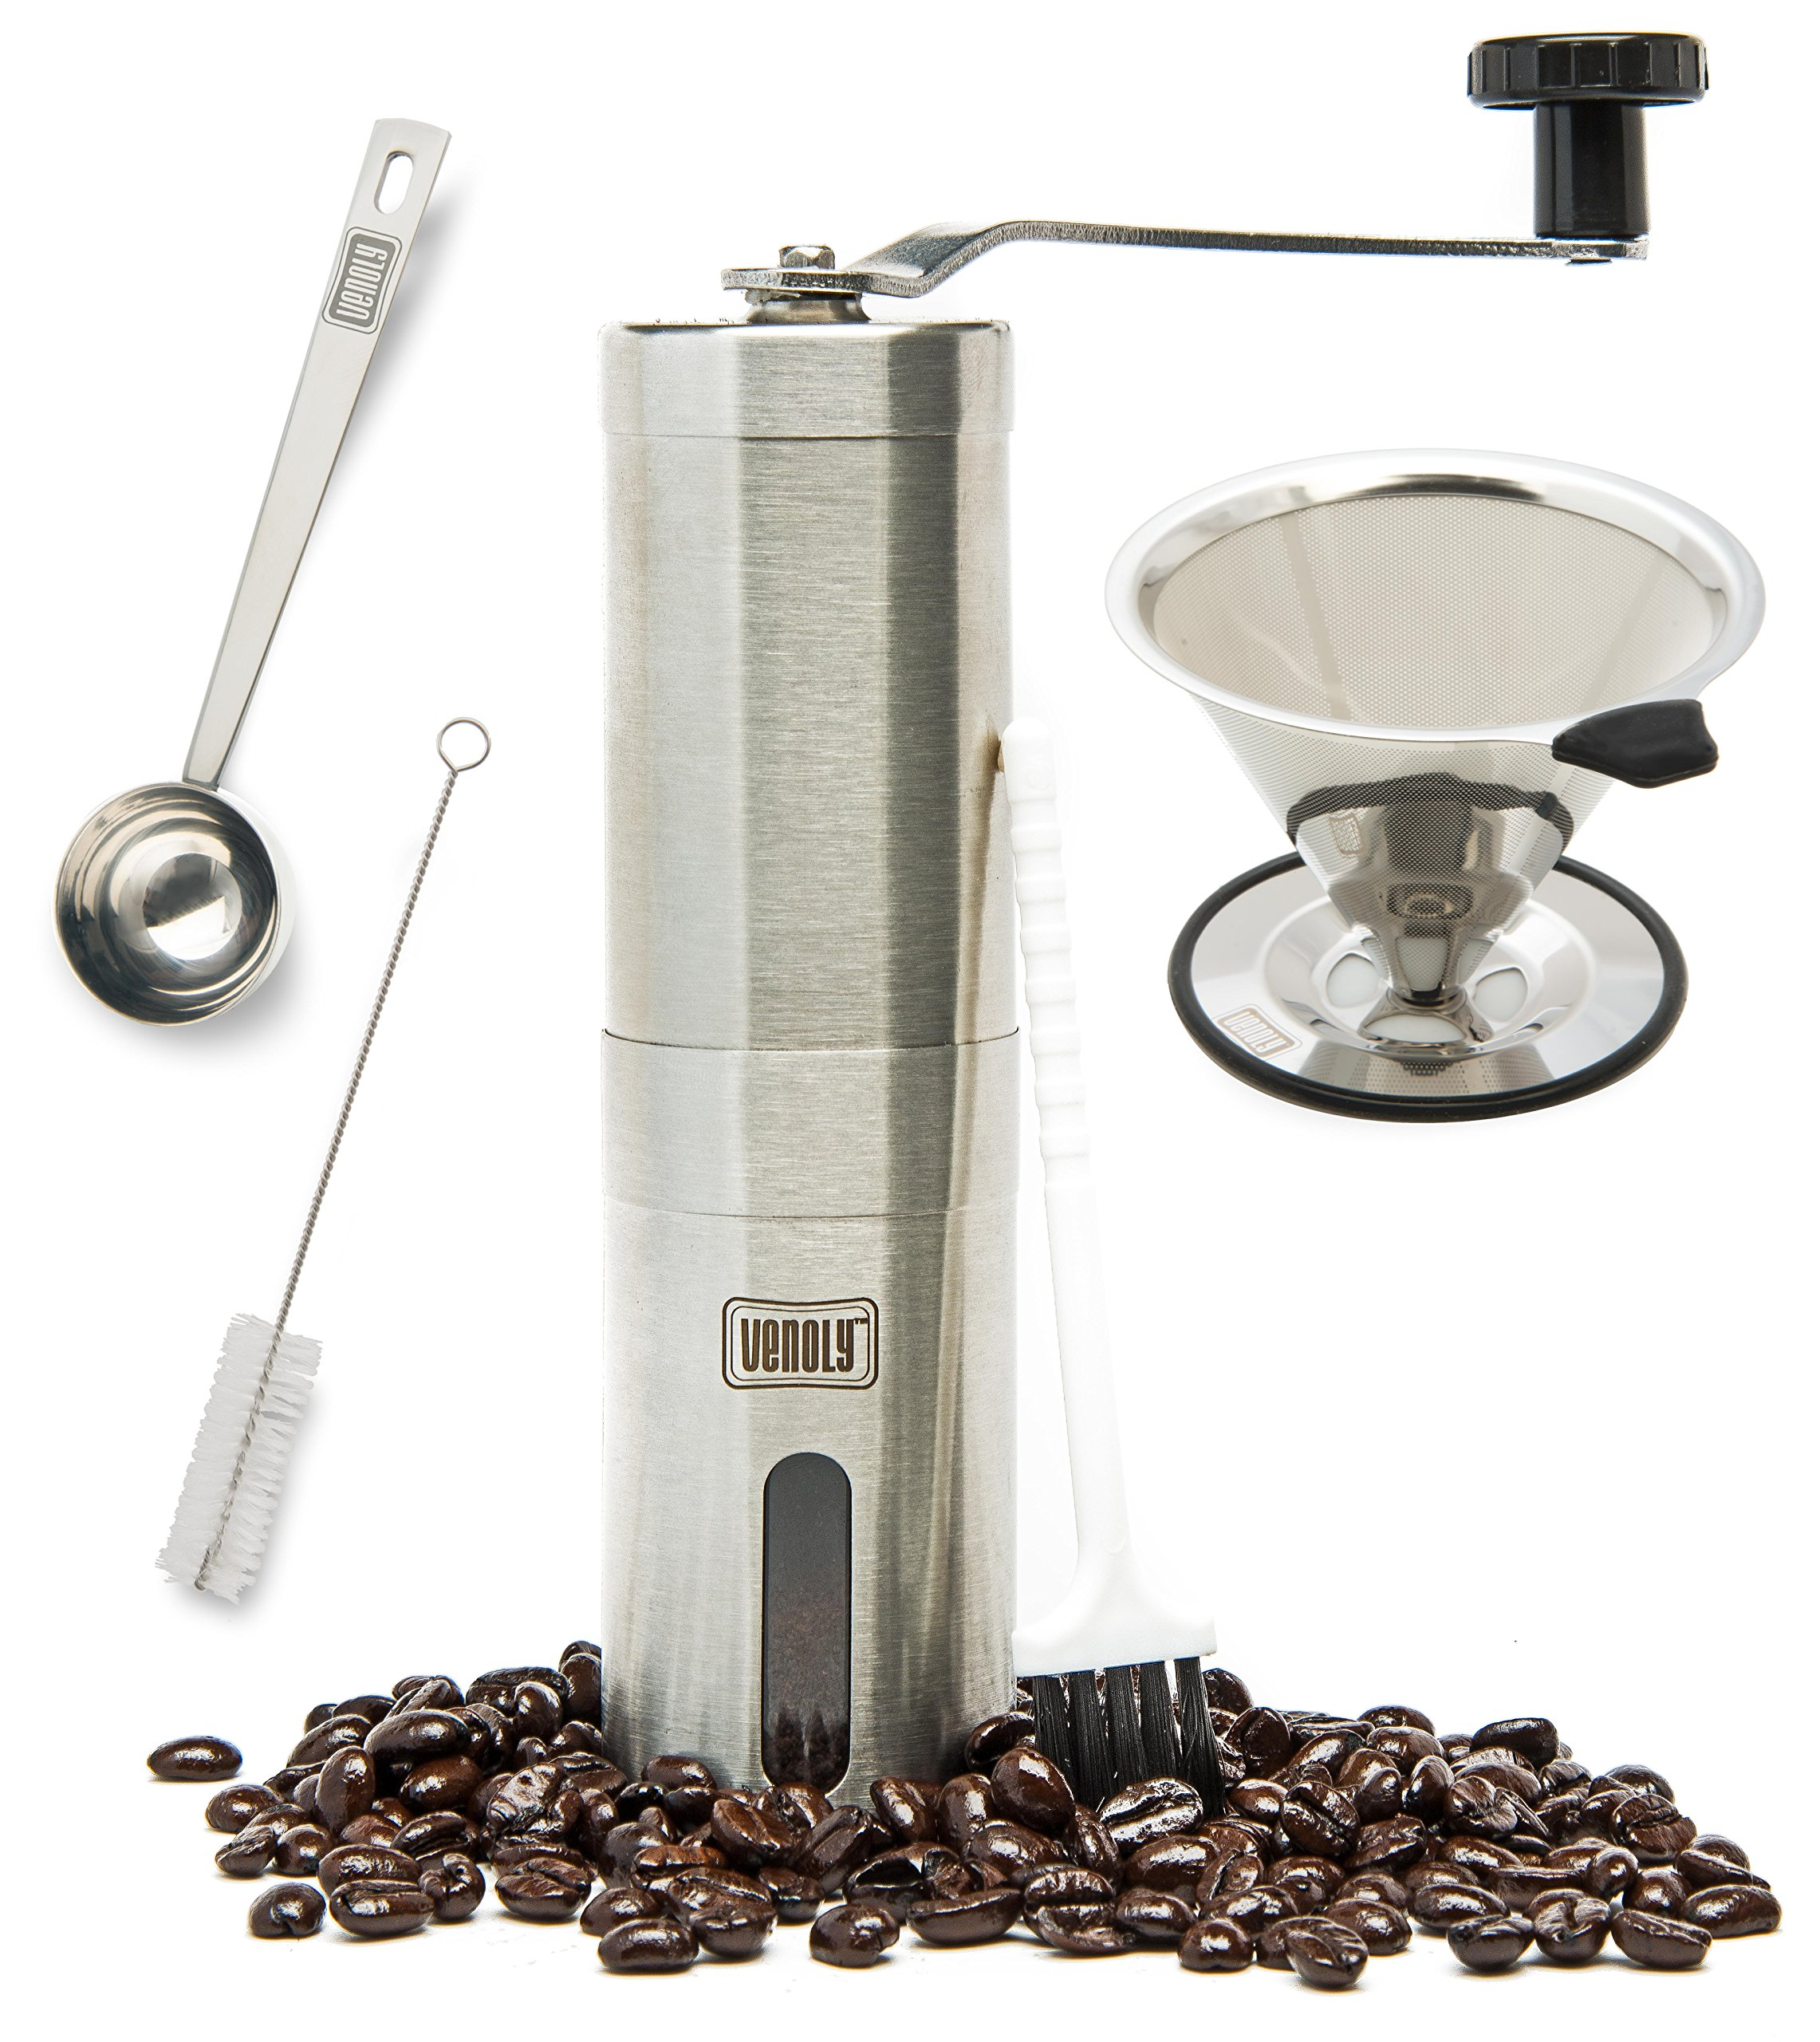 Venoly Conical Burr Coffee Grinder Stainless Steel Hand Crank Travel Coffee Grinder Set with Pour Over Coffee Dripper Brewed Coffee Maker by Venoly